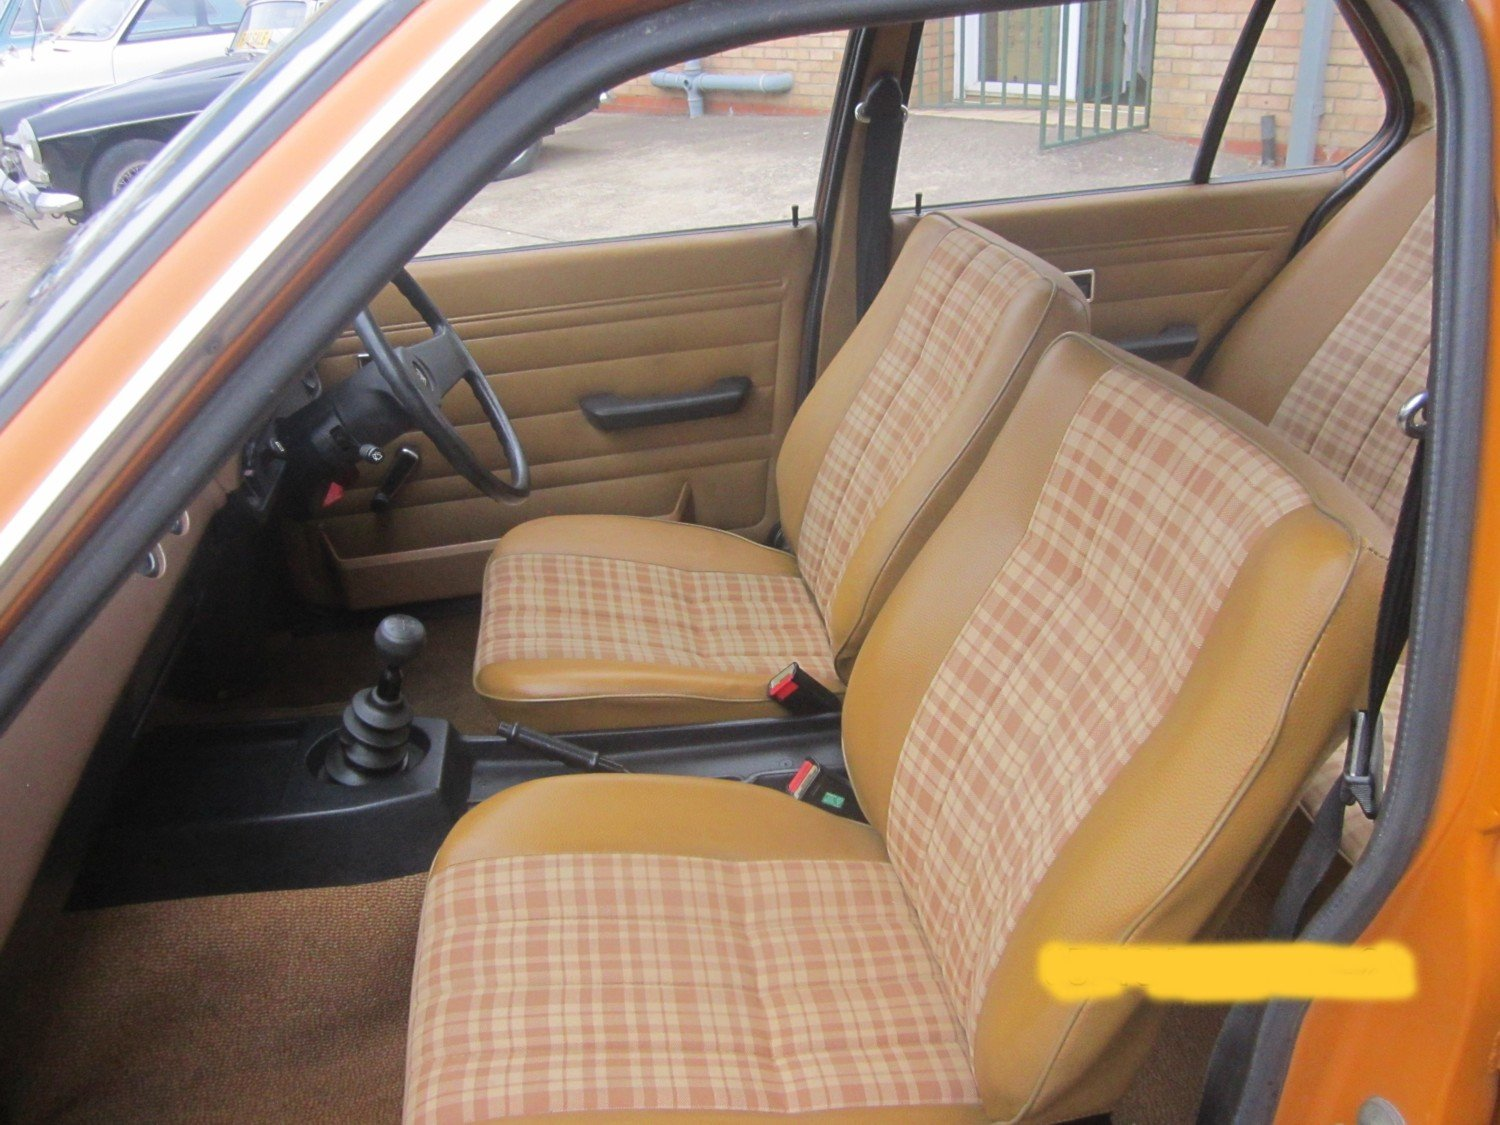 1980 Vauxhall cavalier 1250cc rare stunning For Sale (picture 5 of 6)